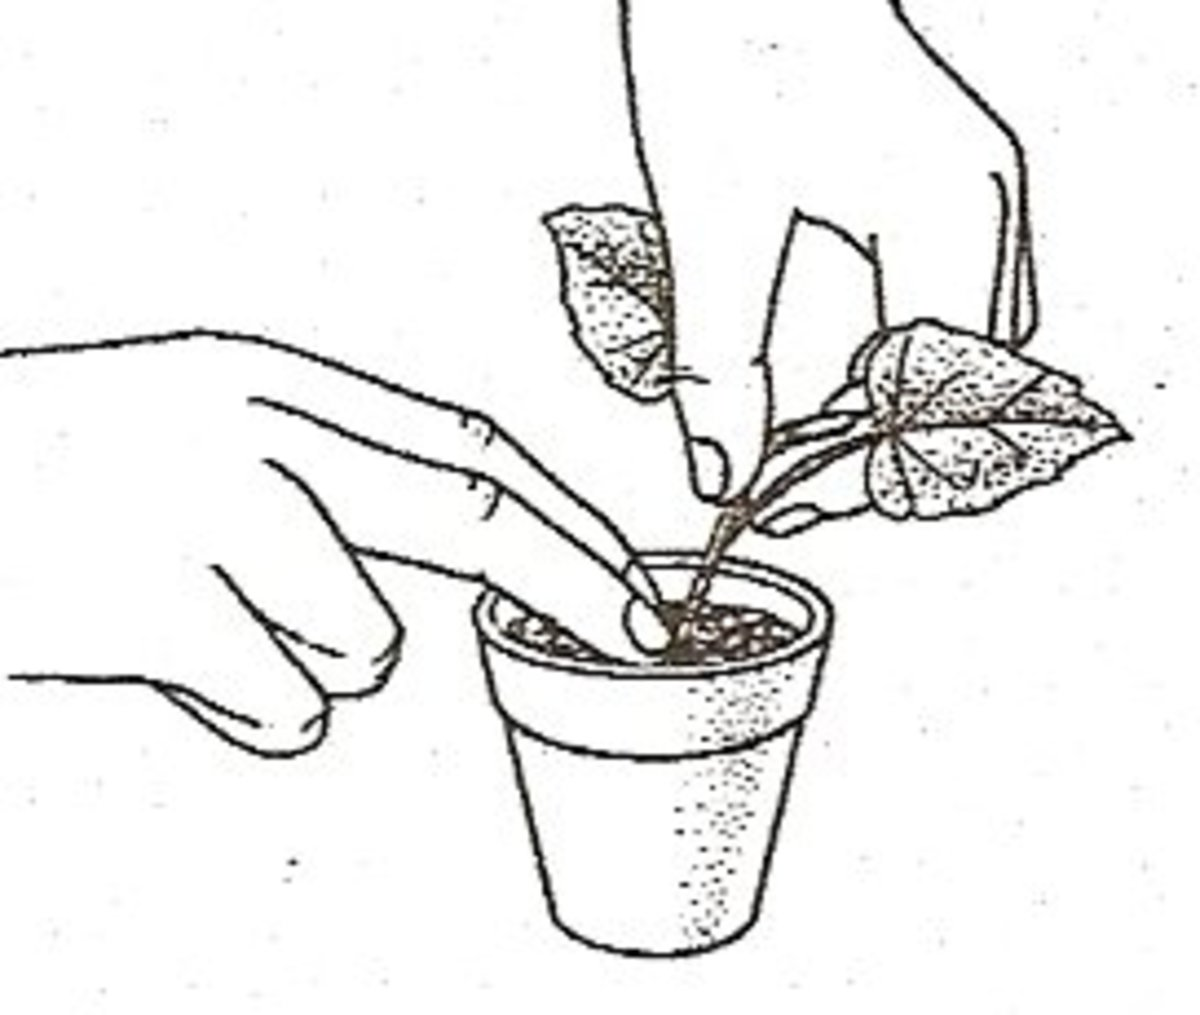 7. Insert cutting into the rooting mixture until the base of the lowest leaf stem rests on top of it.